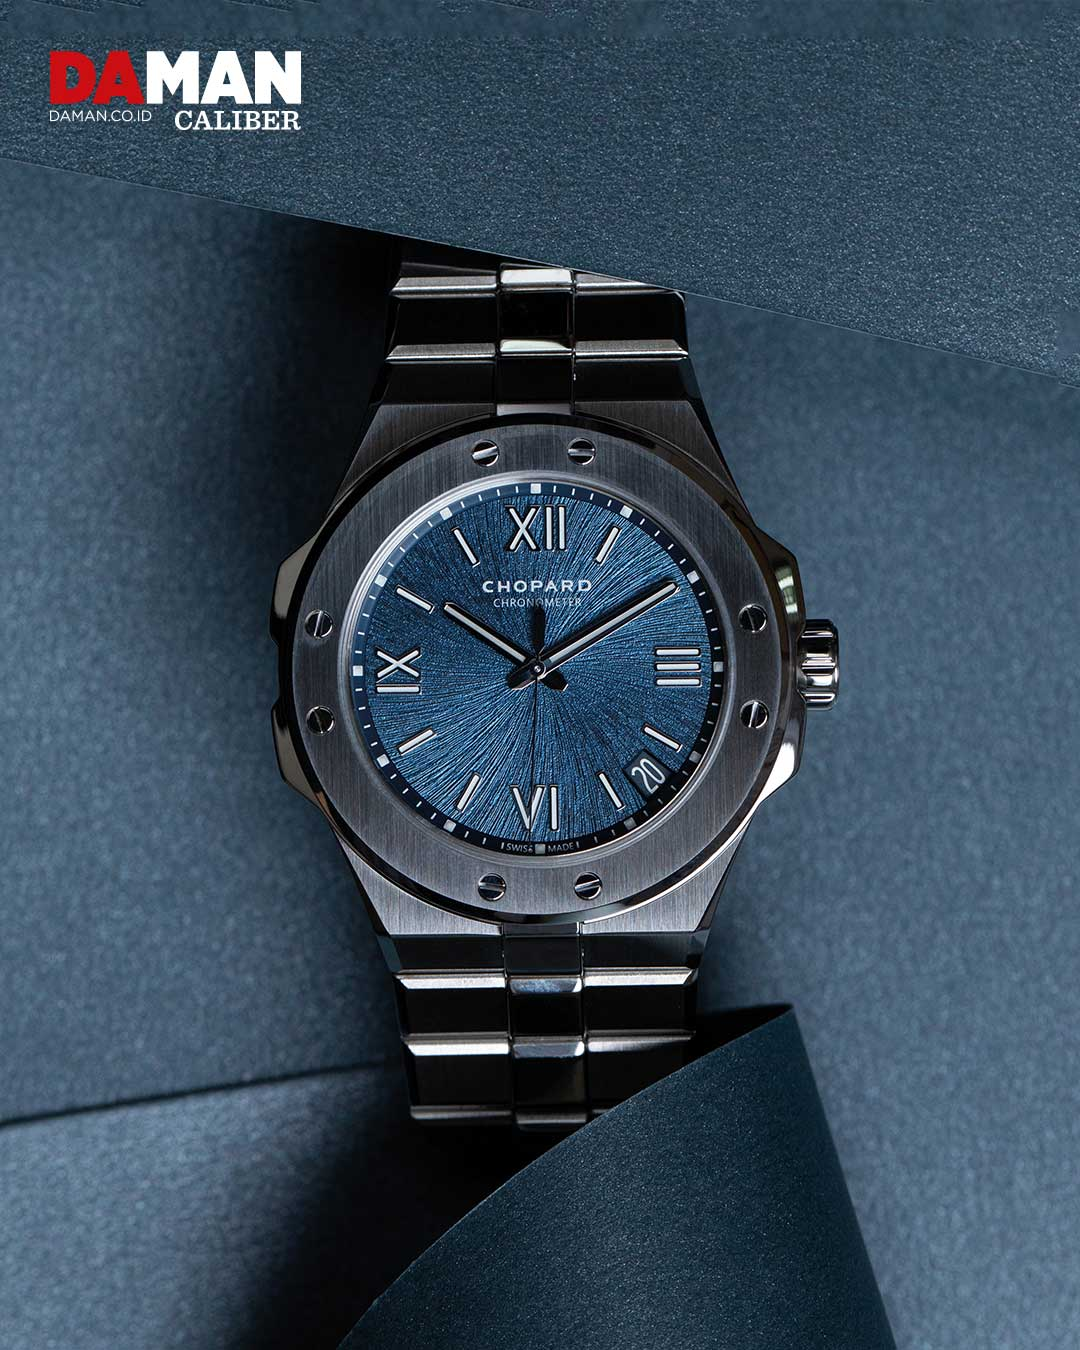 Chopard Alpine Eagle large in Lucent Steel A223 with steel bracelet